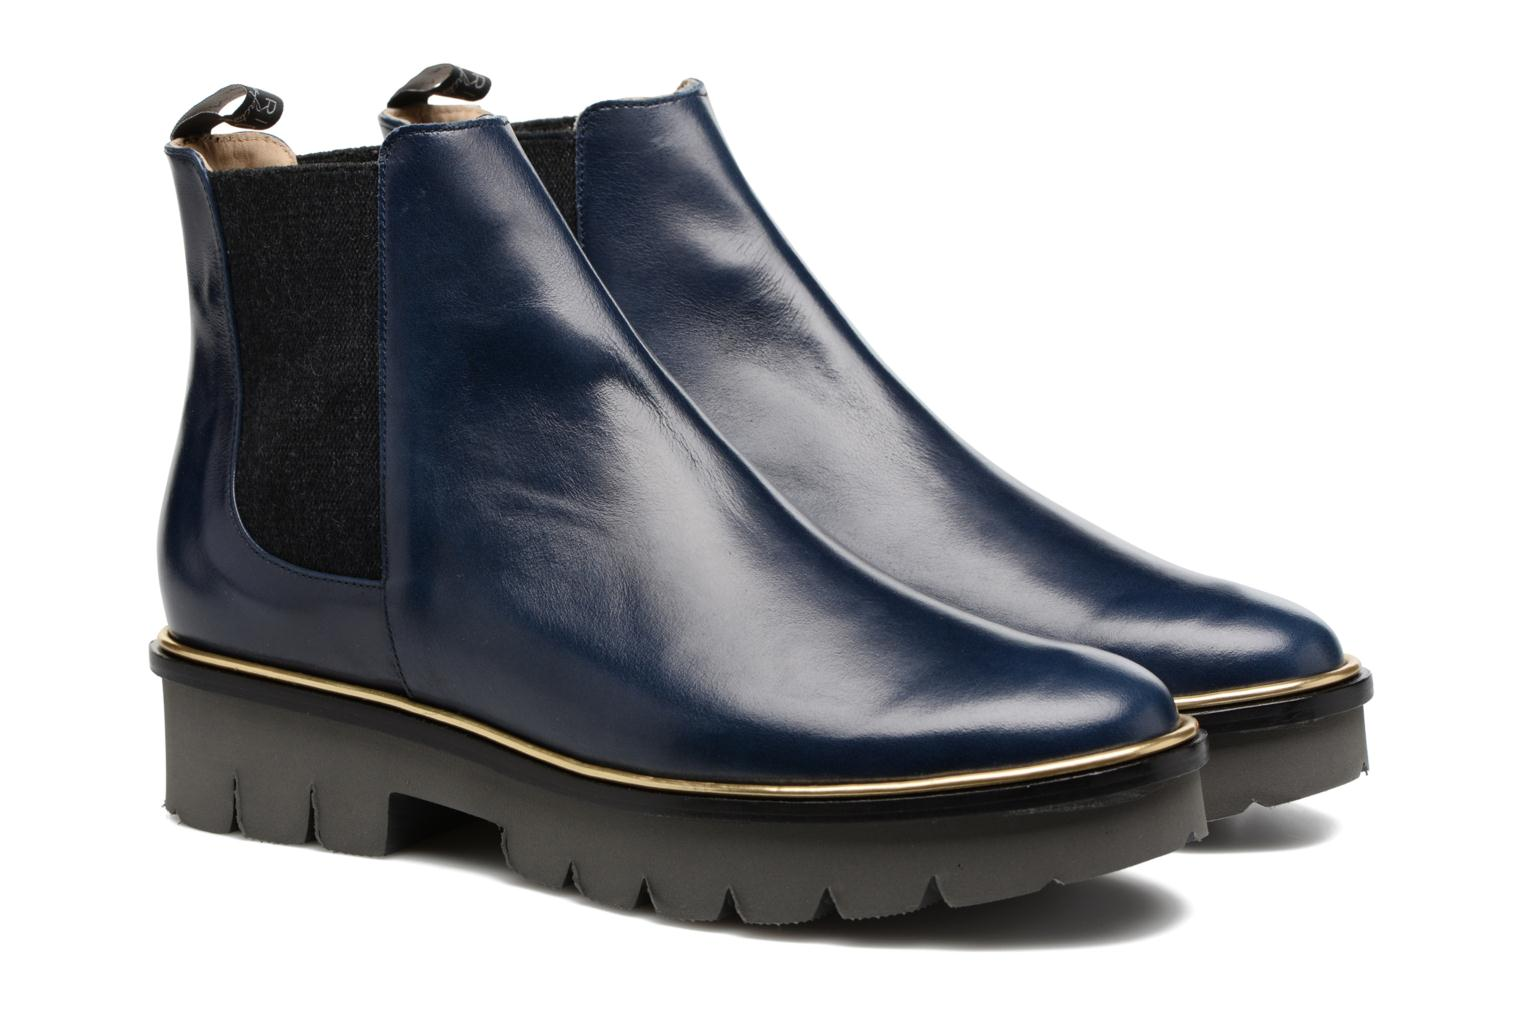 Bottines et boots MAURICE manufacture Charly Bleu vue 3/4